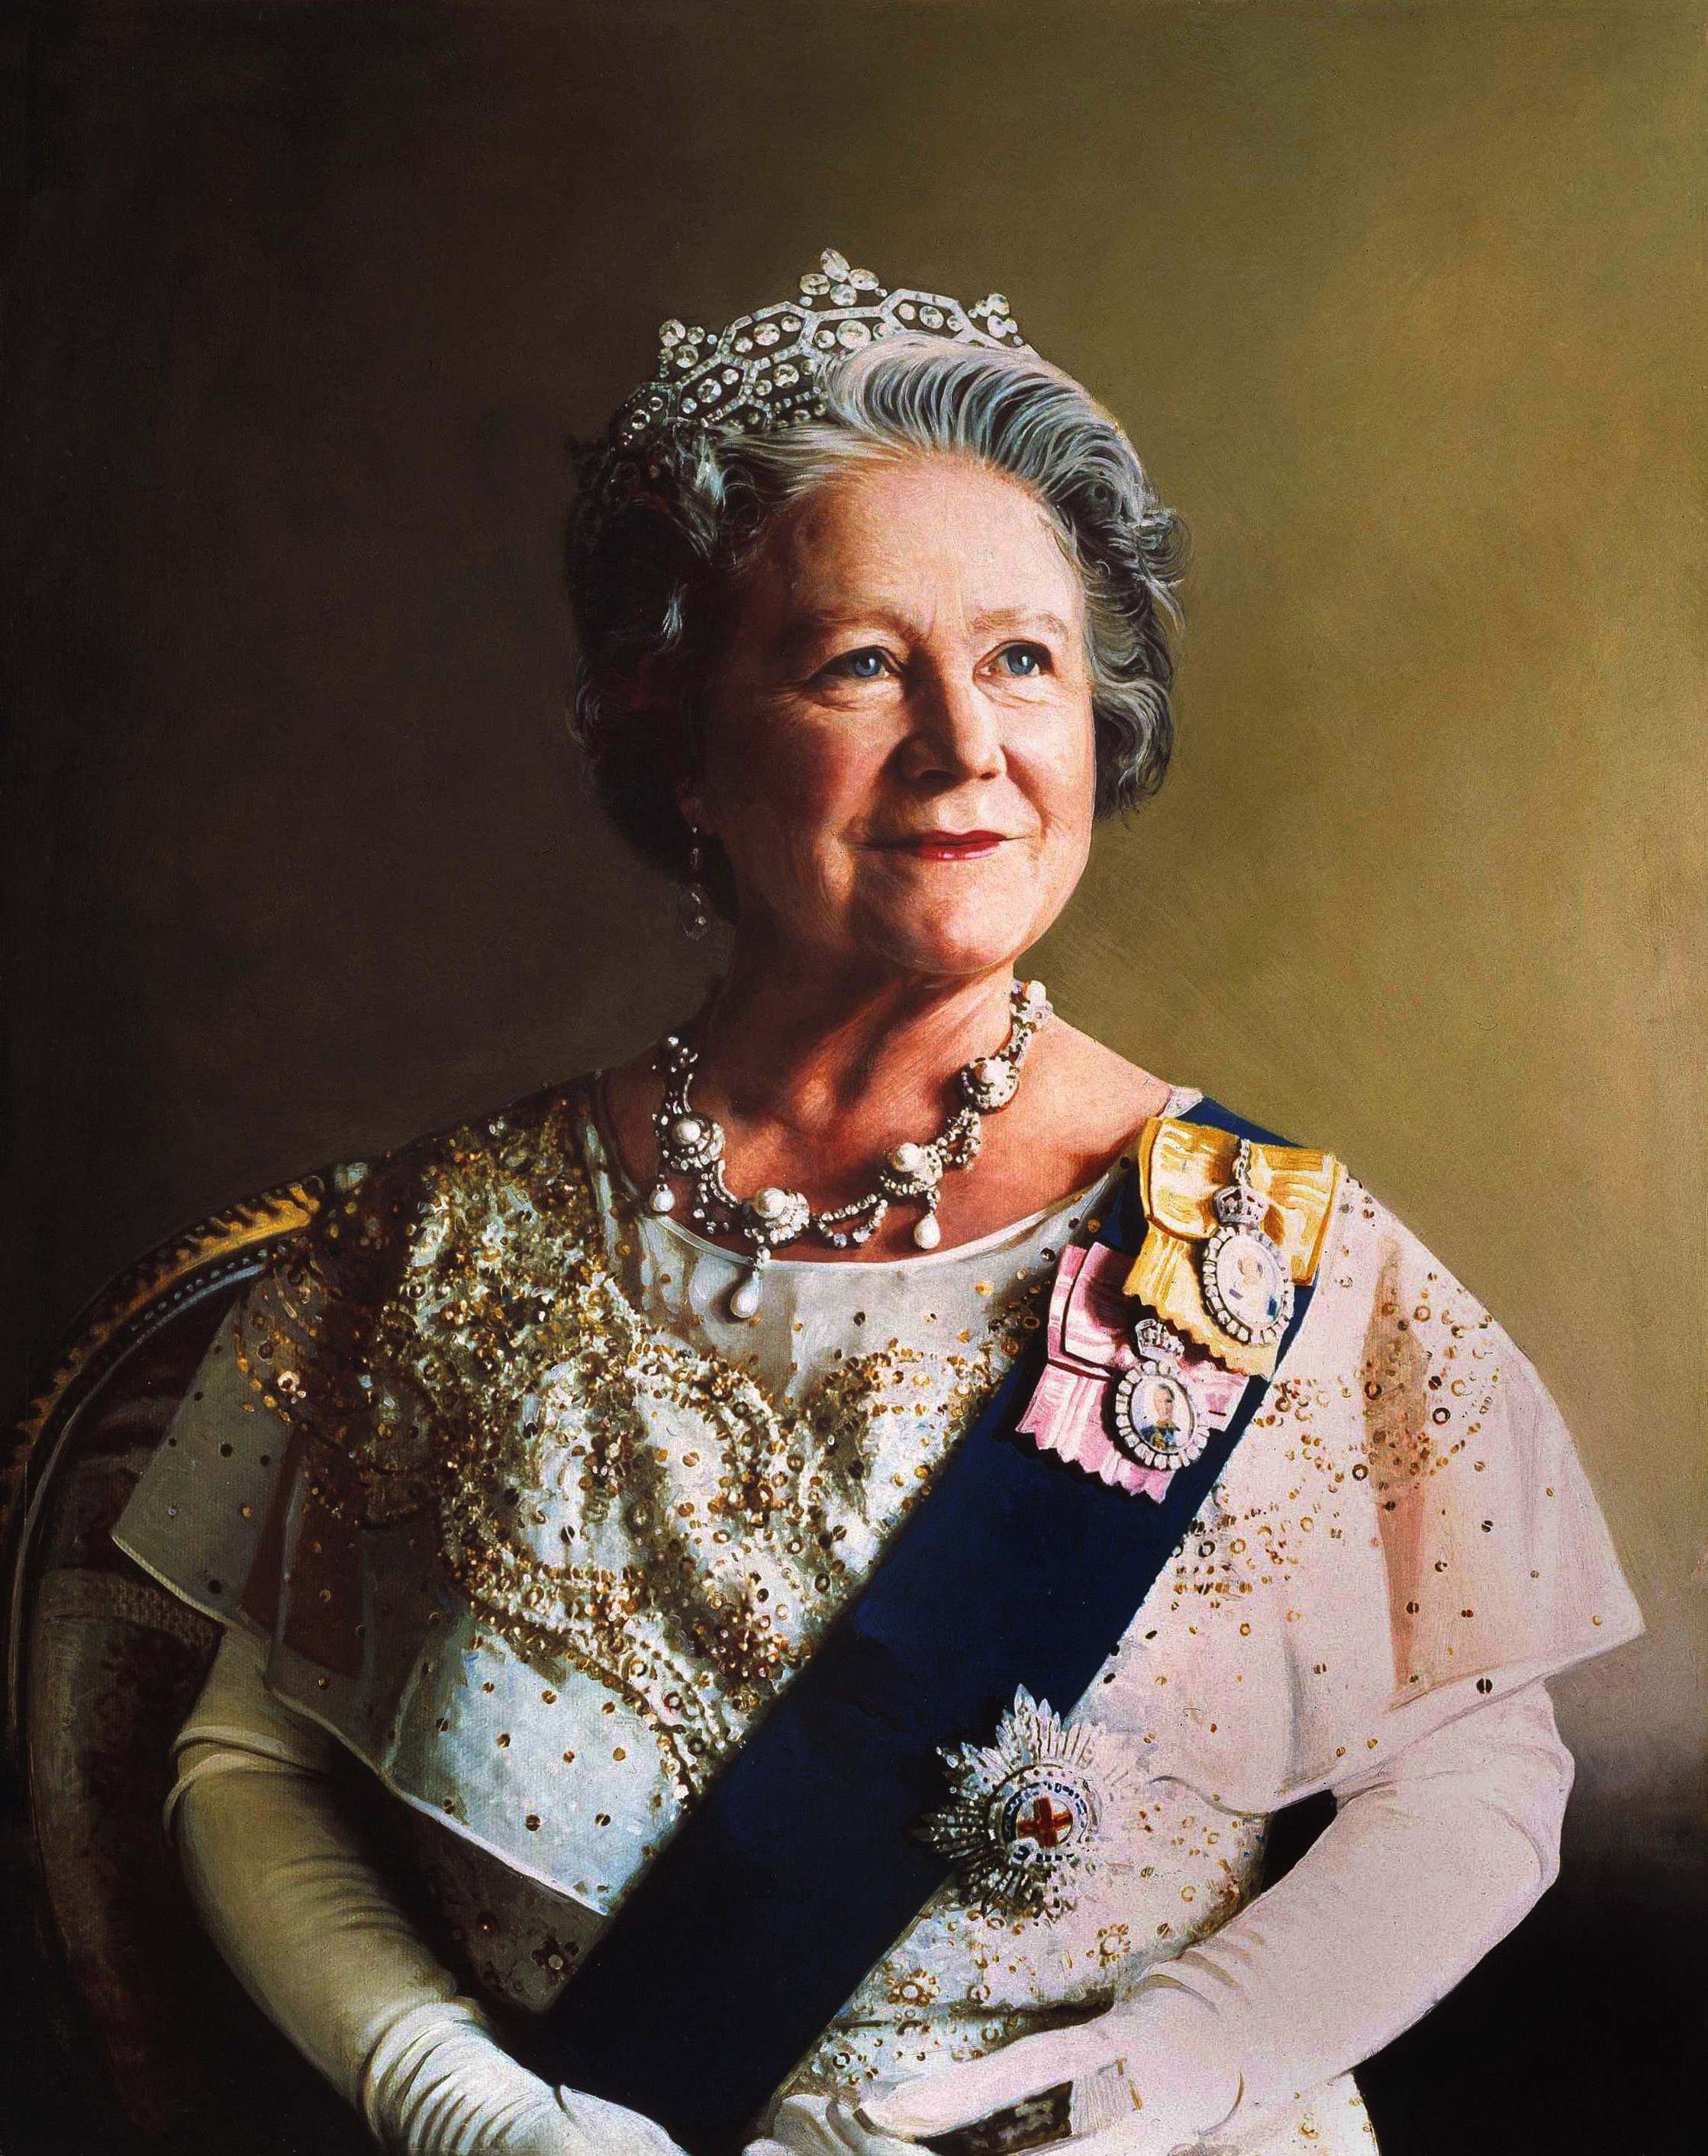 Queen_Elizabeth_the_Queen_Mother_portrait.jpg